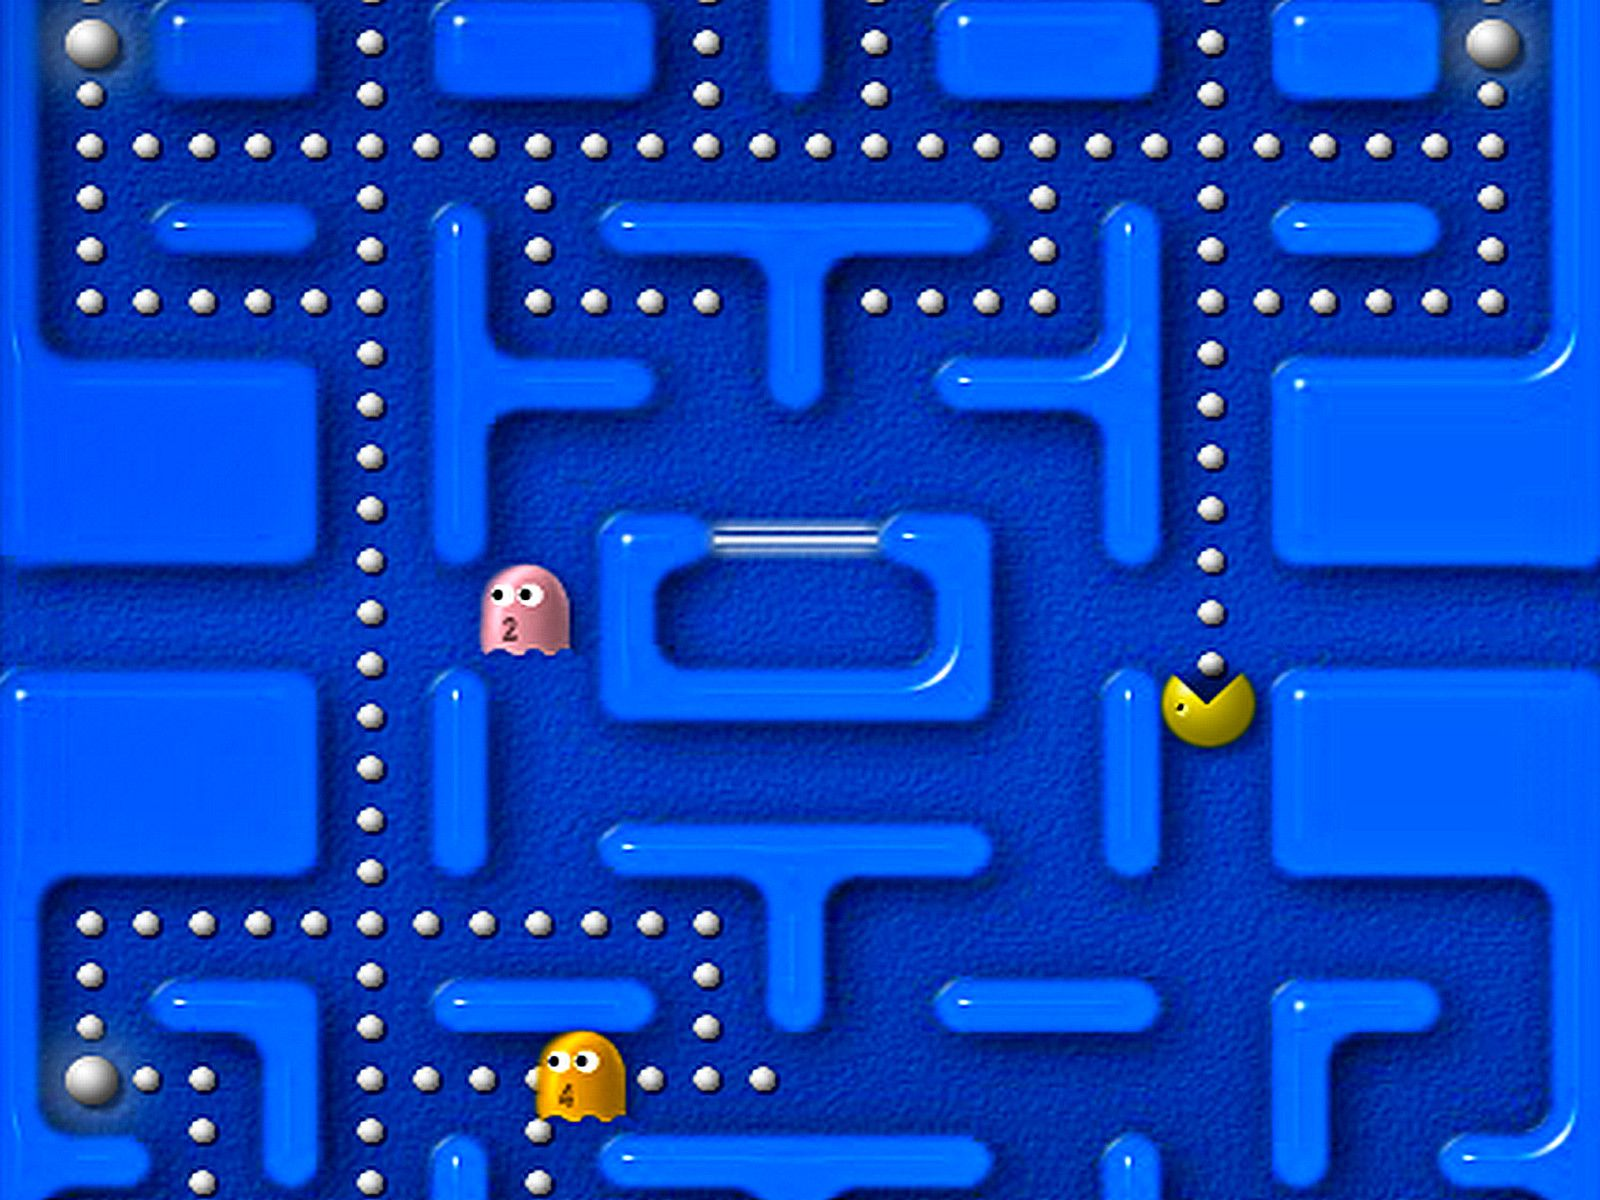 Anti Pacman Game in 2020 Pacman game